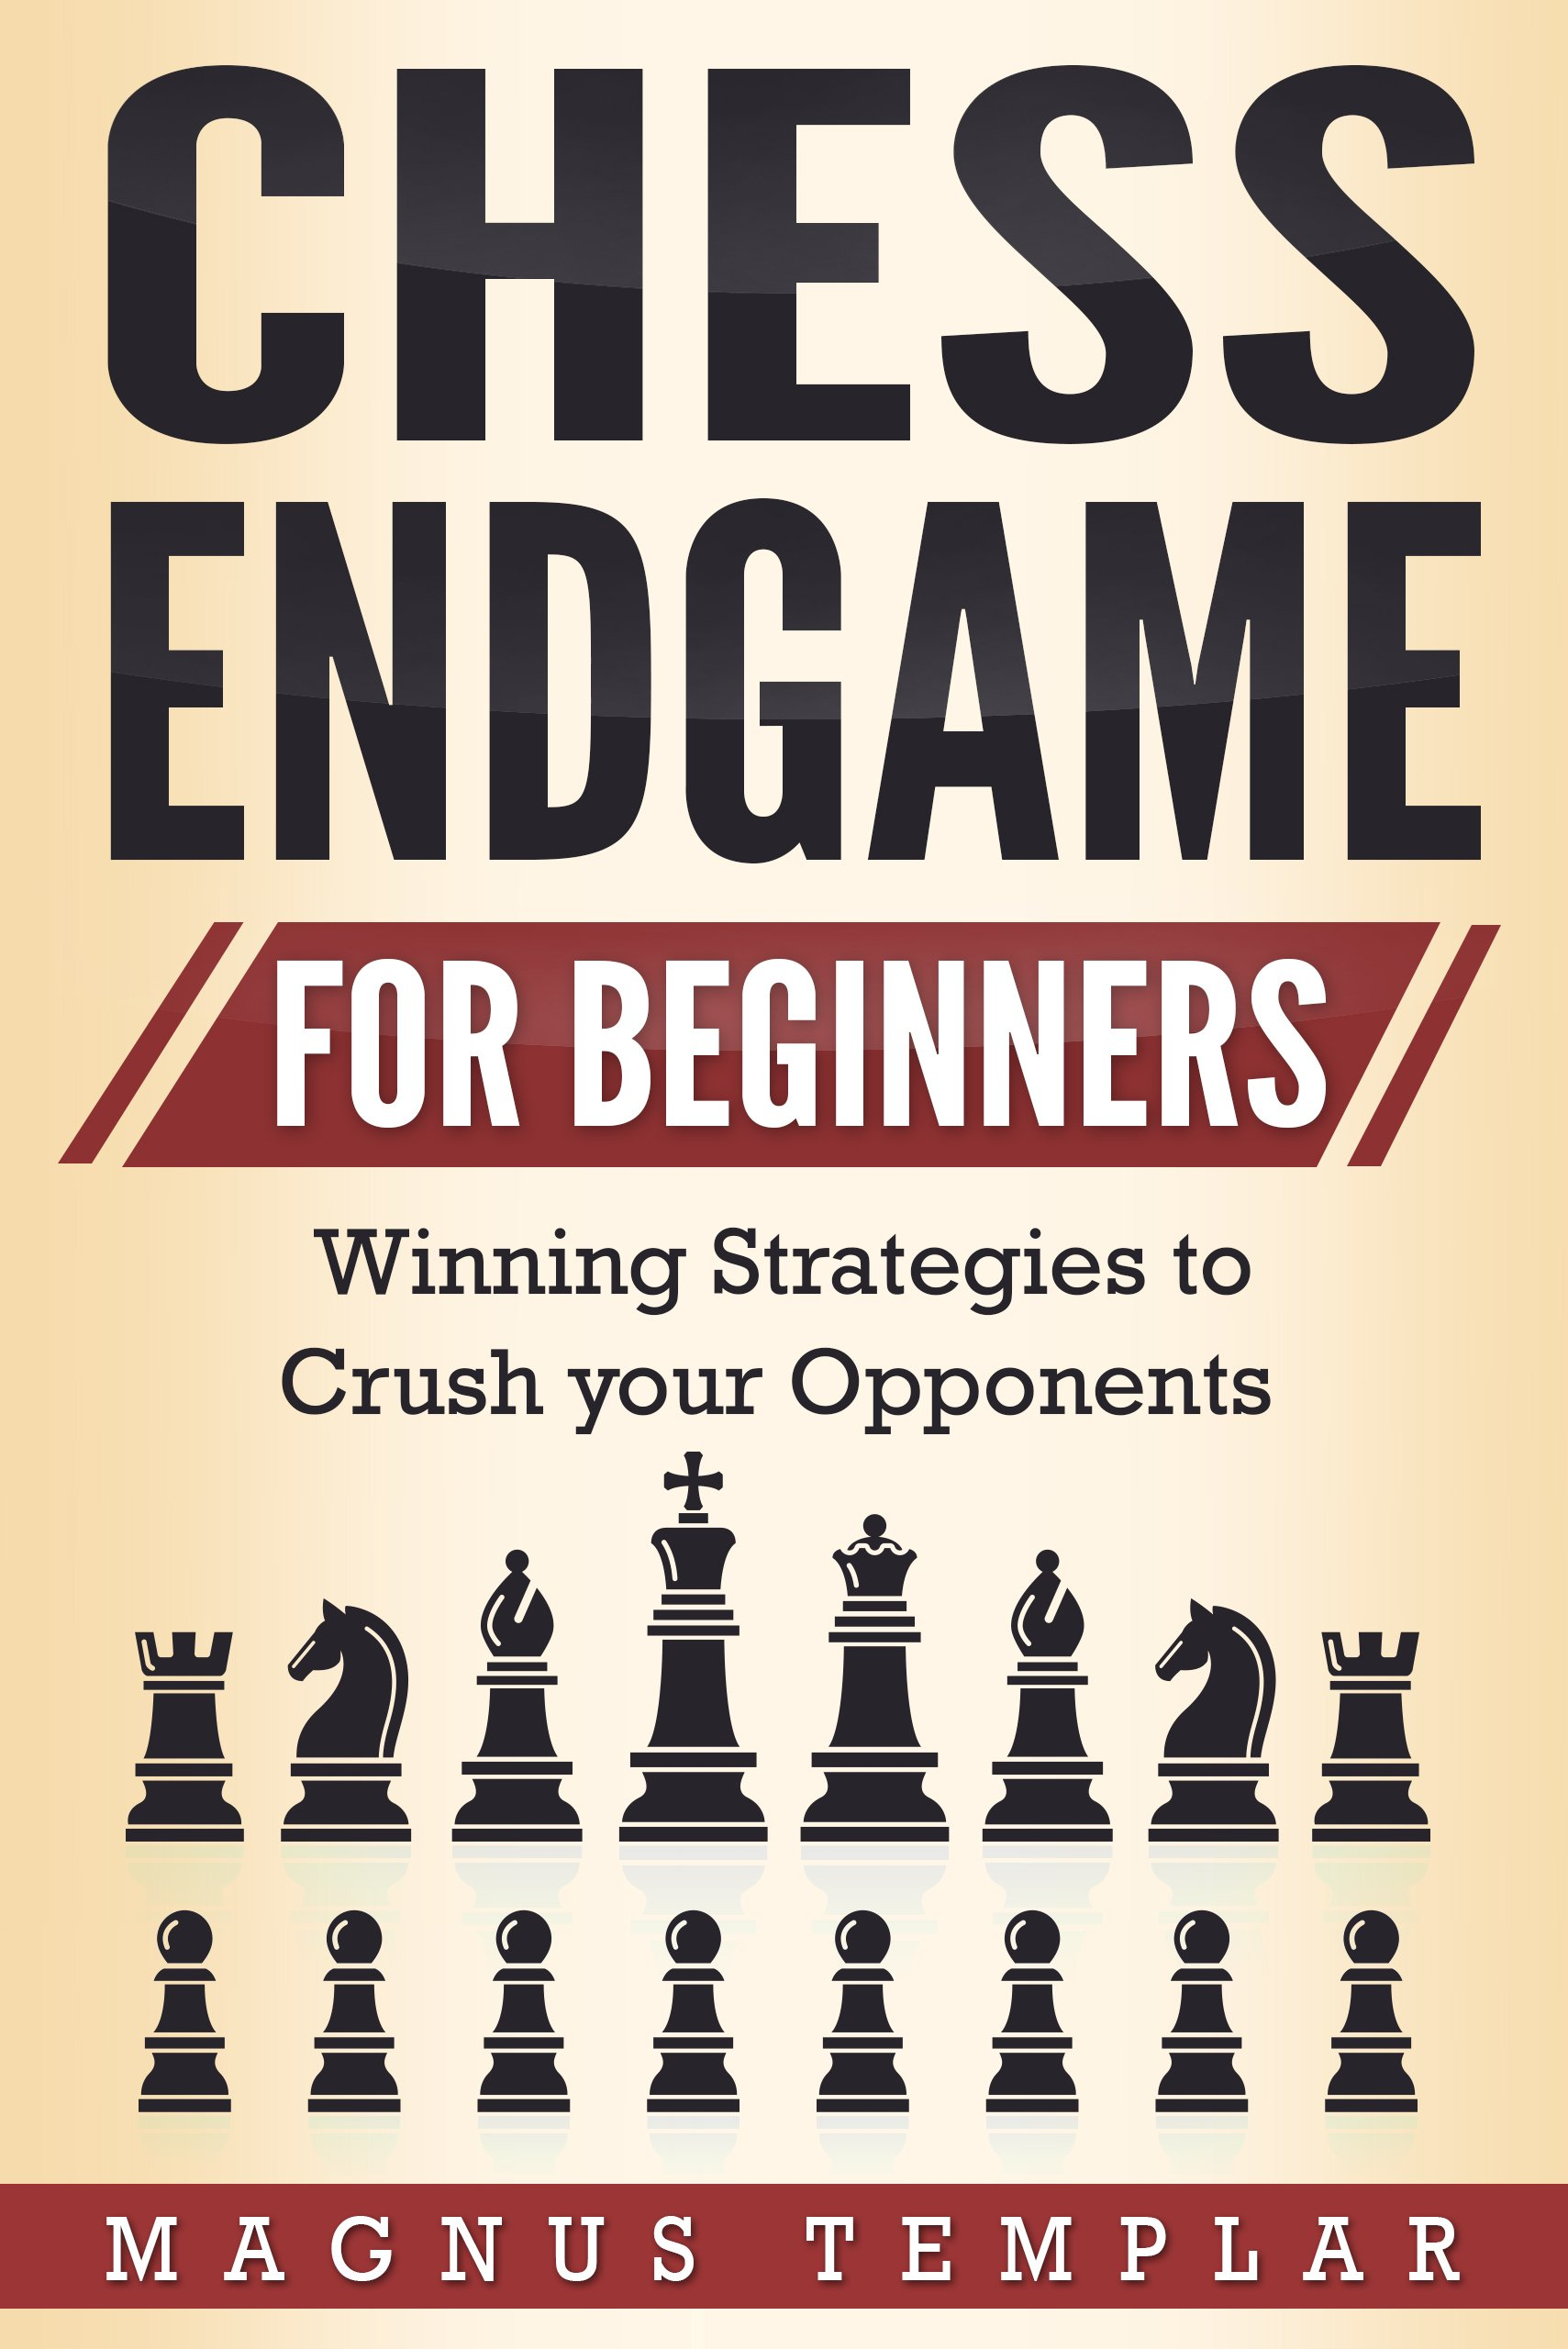 Chess For Beginners  Winning Strategies To Crush Your Opponents  CHESS ENDGAME   English Edition